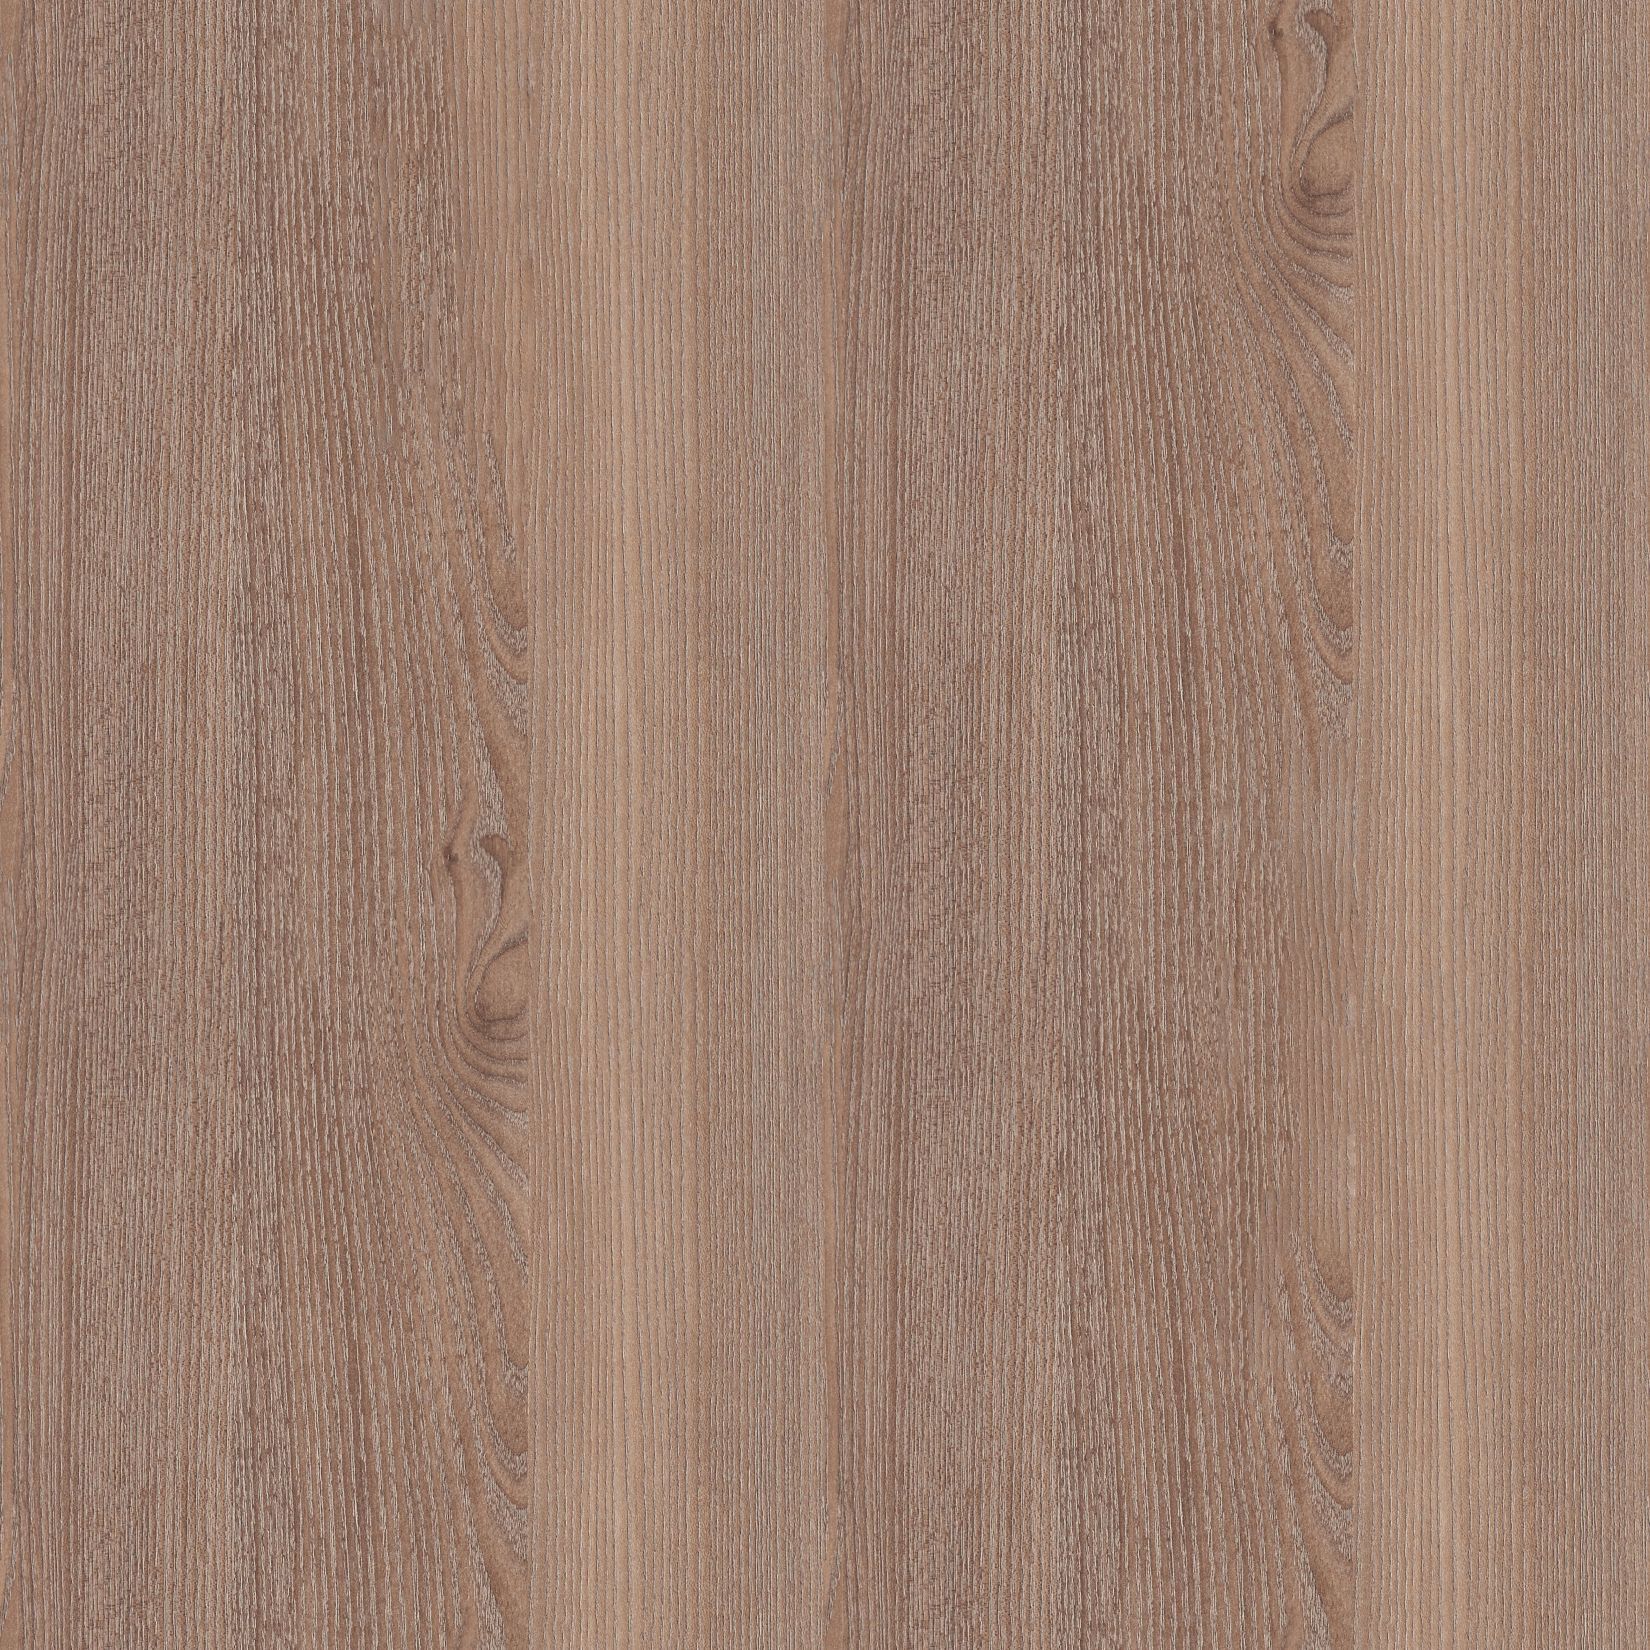 Surfaceset 2016 Unfiltered Palette 6437 Chalked Knotty Ash The Trend Is To Keep It Simple Less Is More This La Formica Laminate Formica Laminate